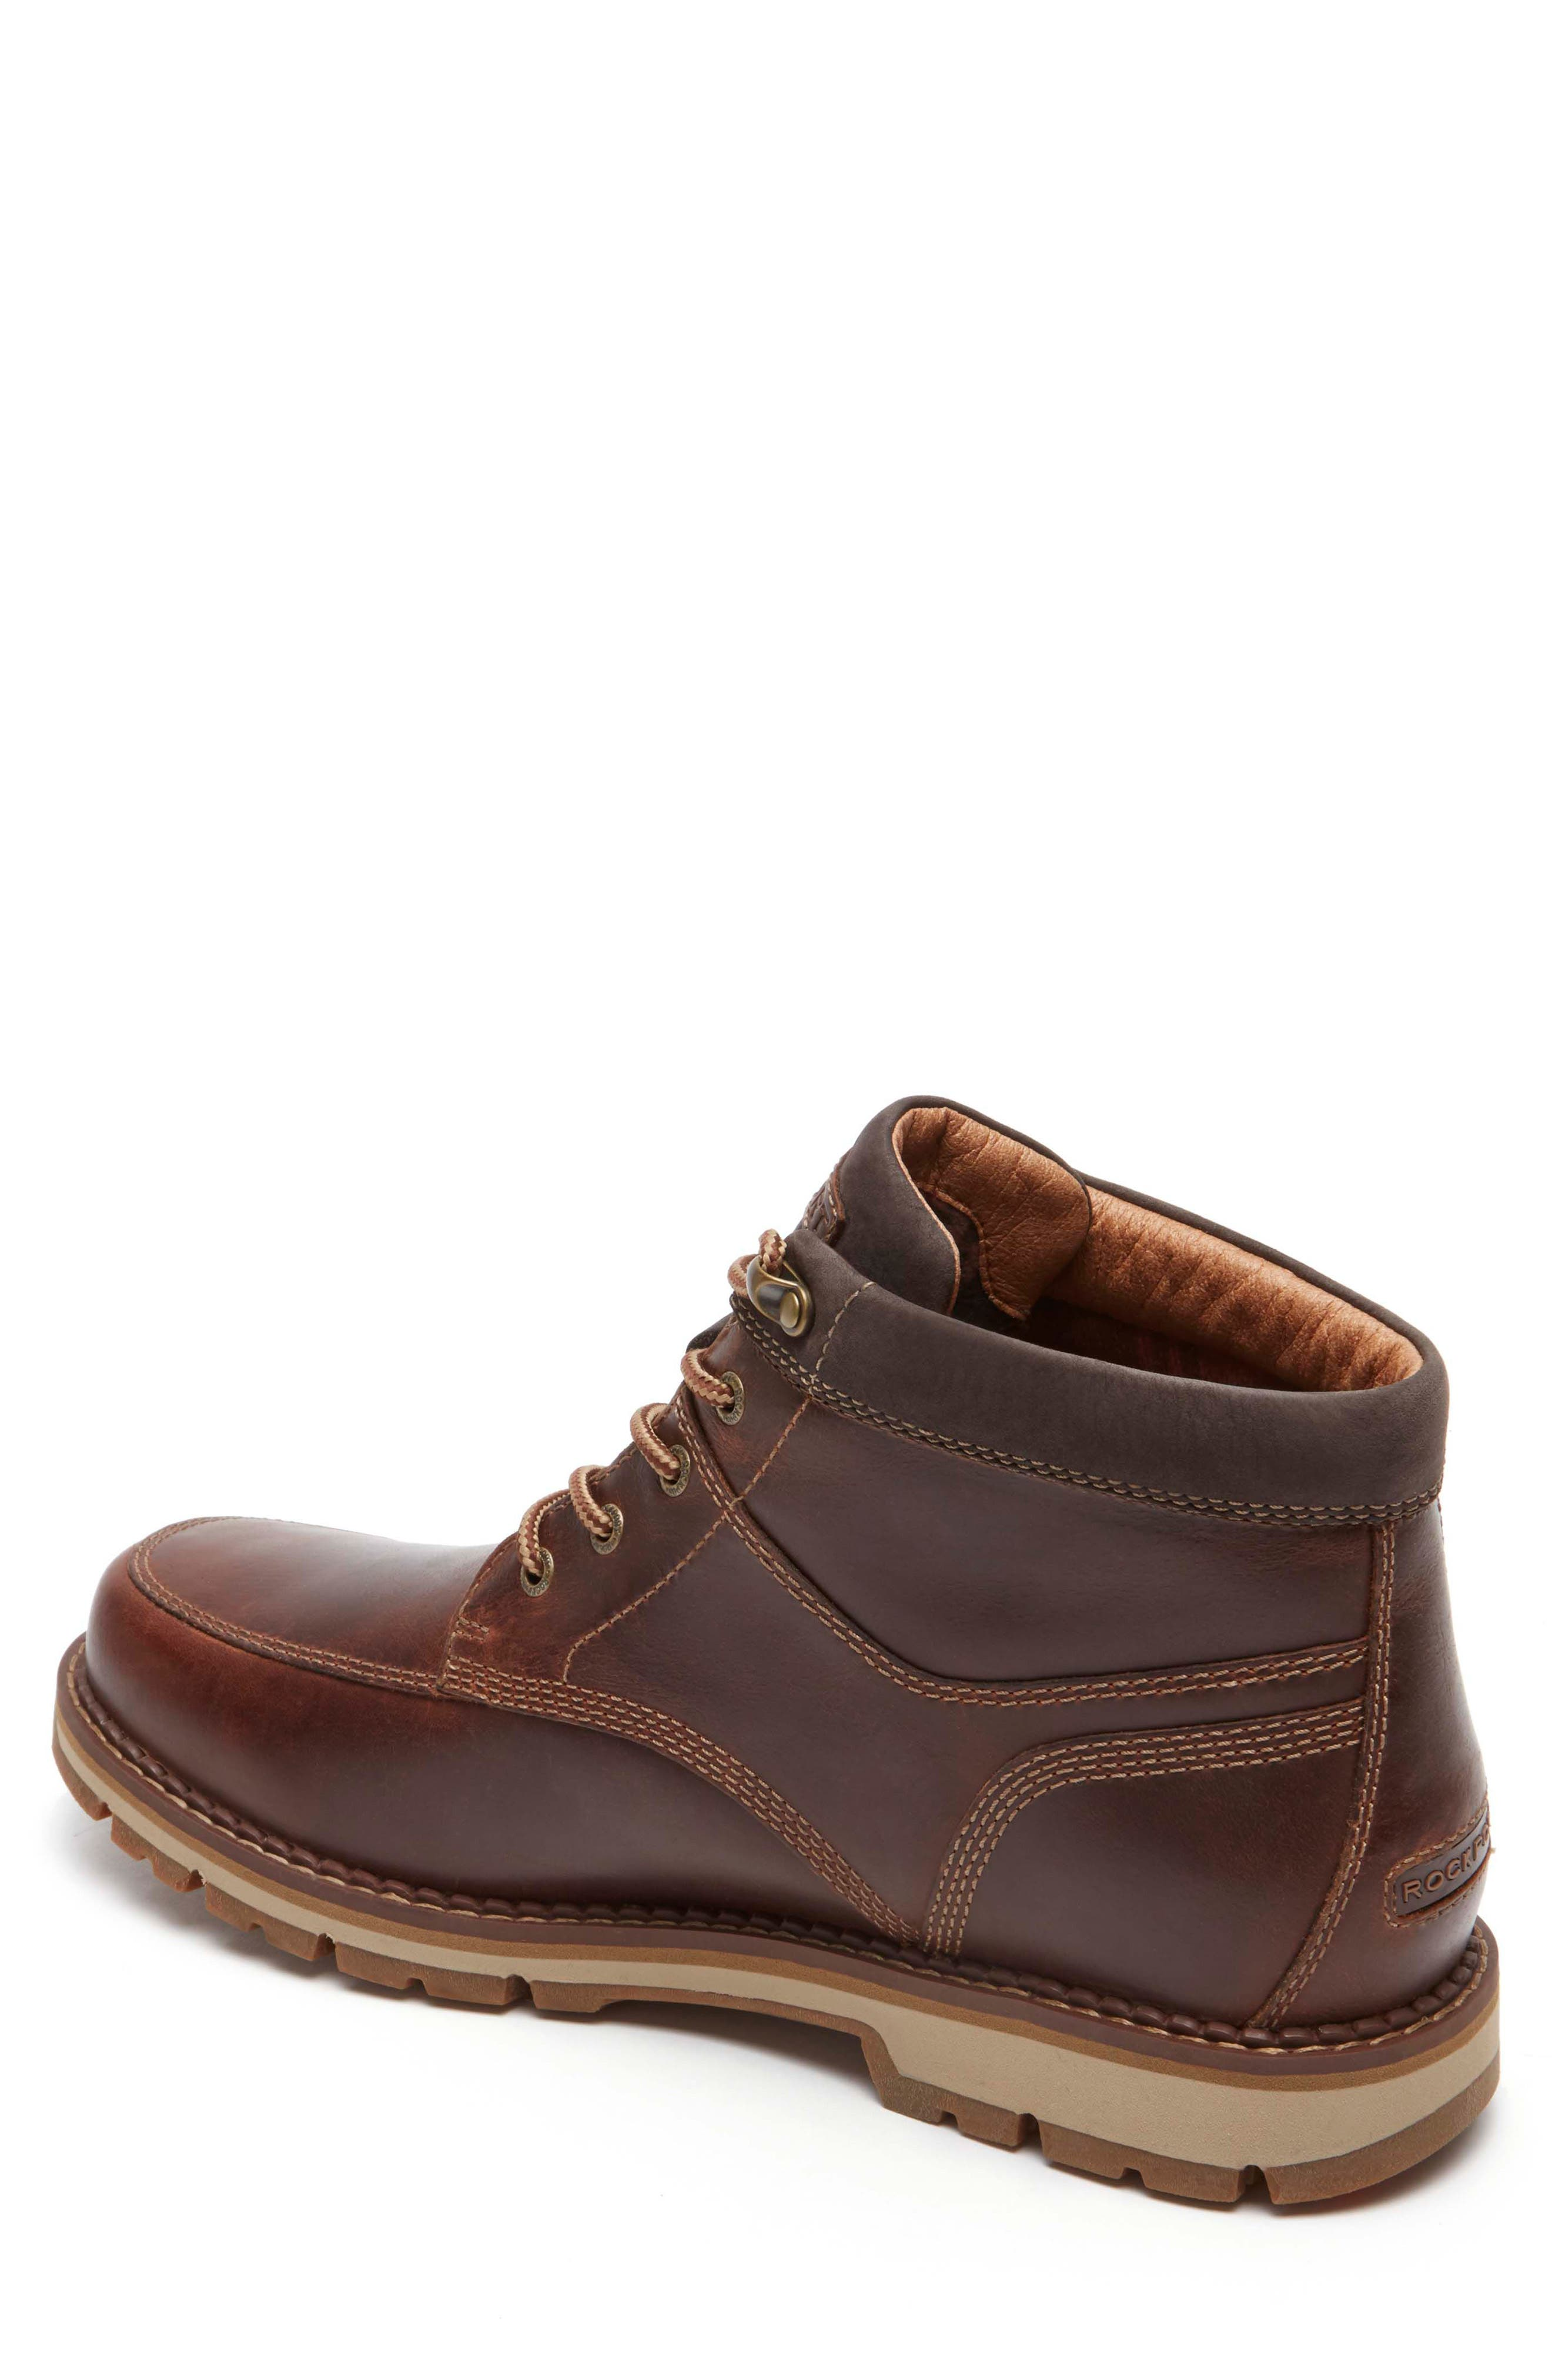 Centry Moc Toe Boot,                             Alternate thumbnail 2, color,                             200